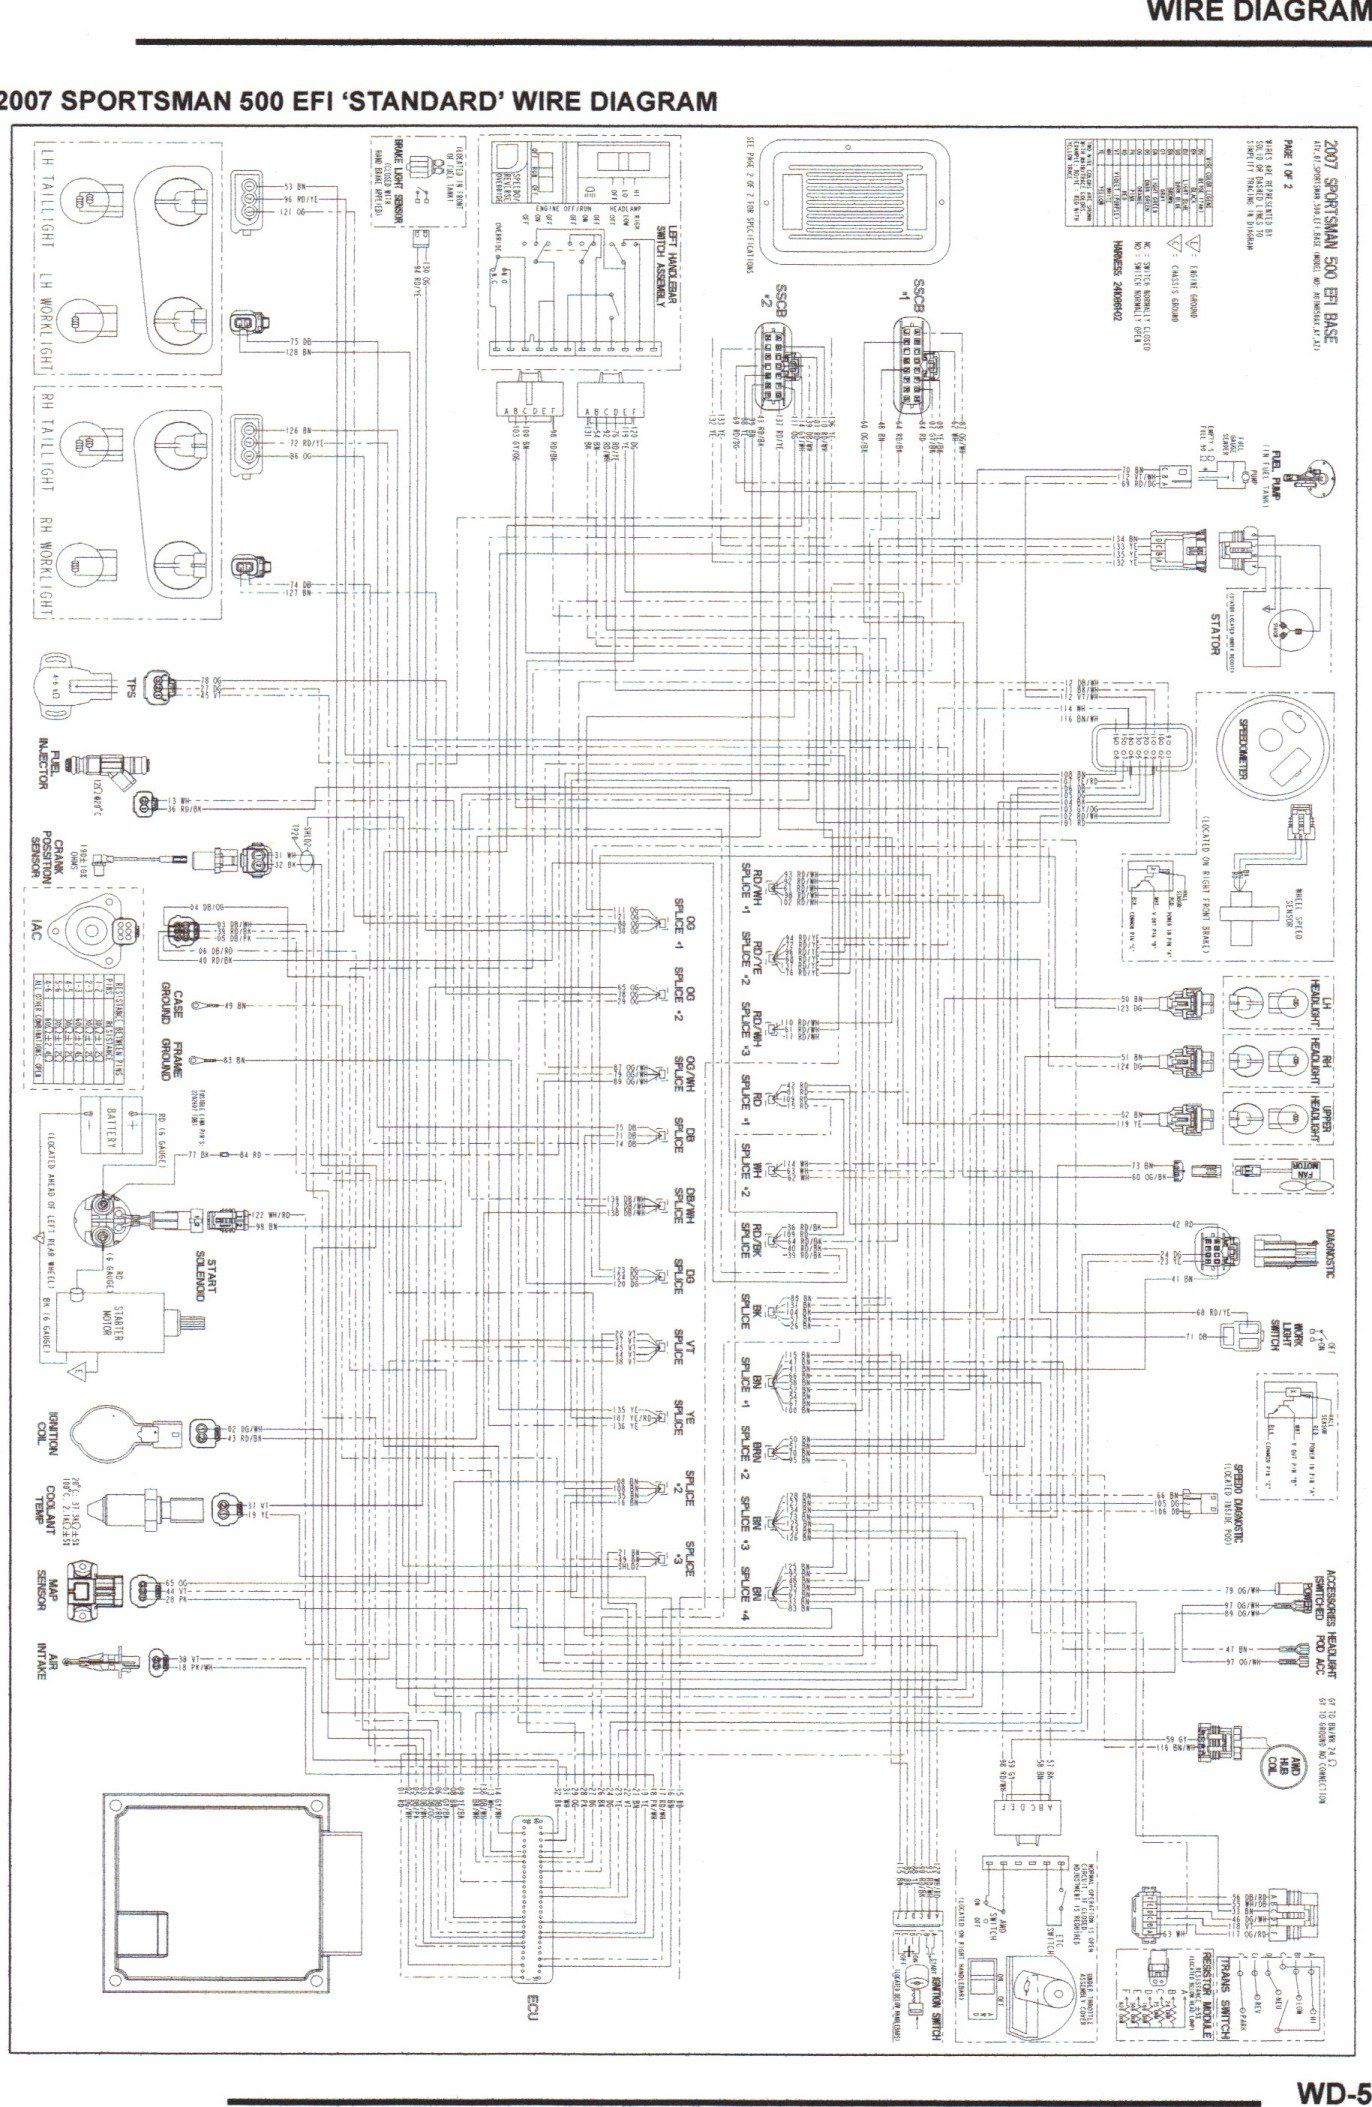 2003 Polaris Trail Boss Wiring Diagram Polaris Starter